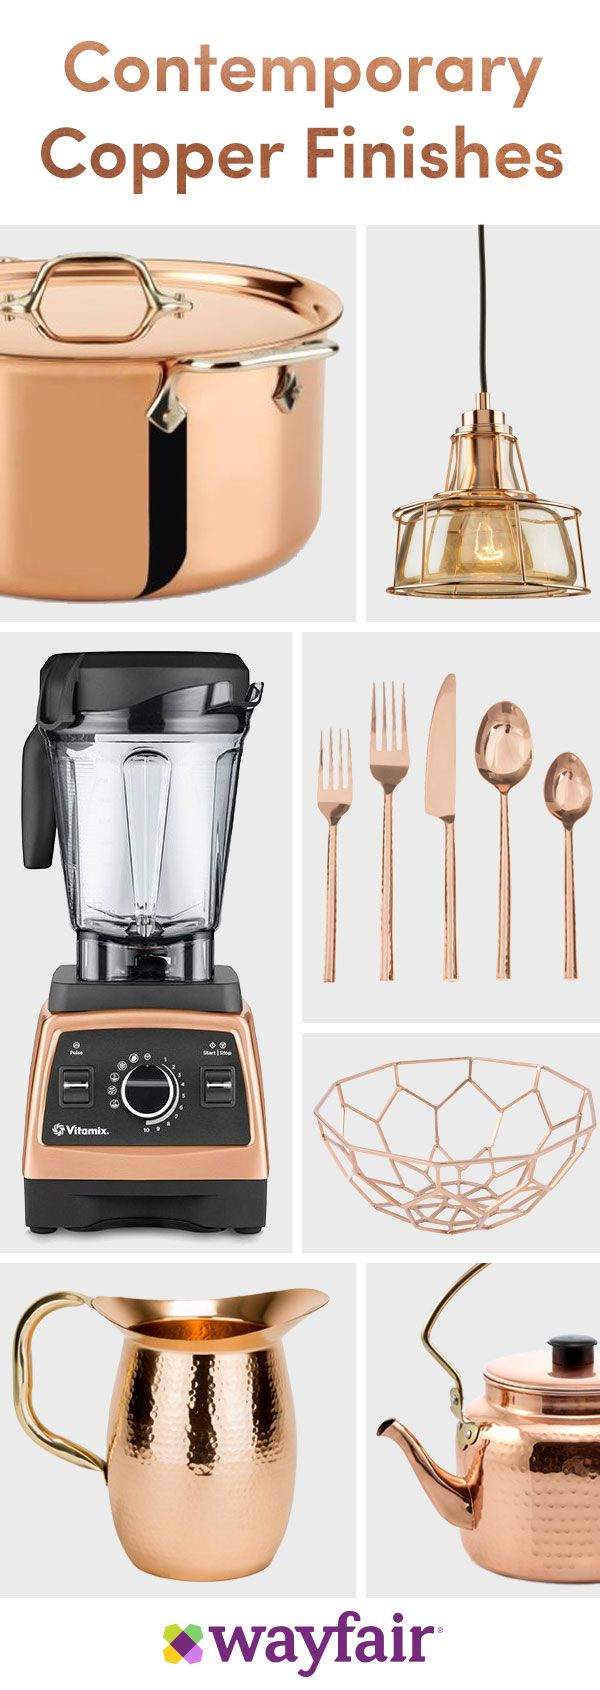 8856 best Copper images on Pinterest | Copper kitchen, Copper and ...